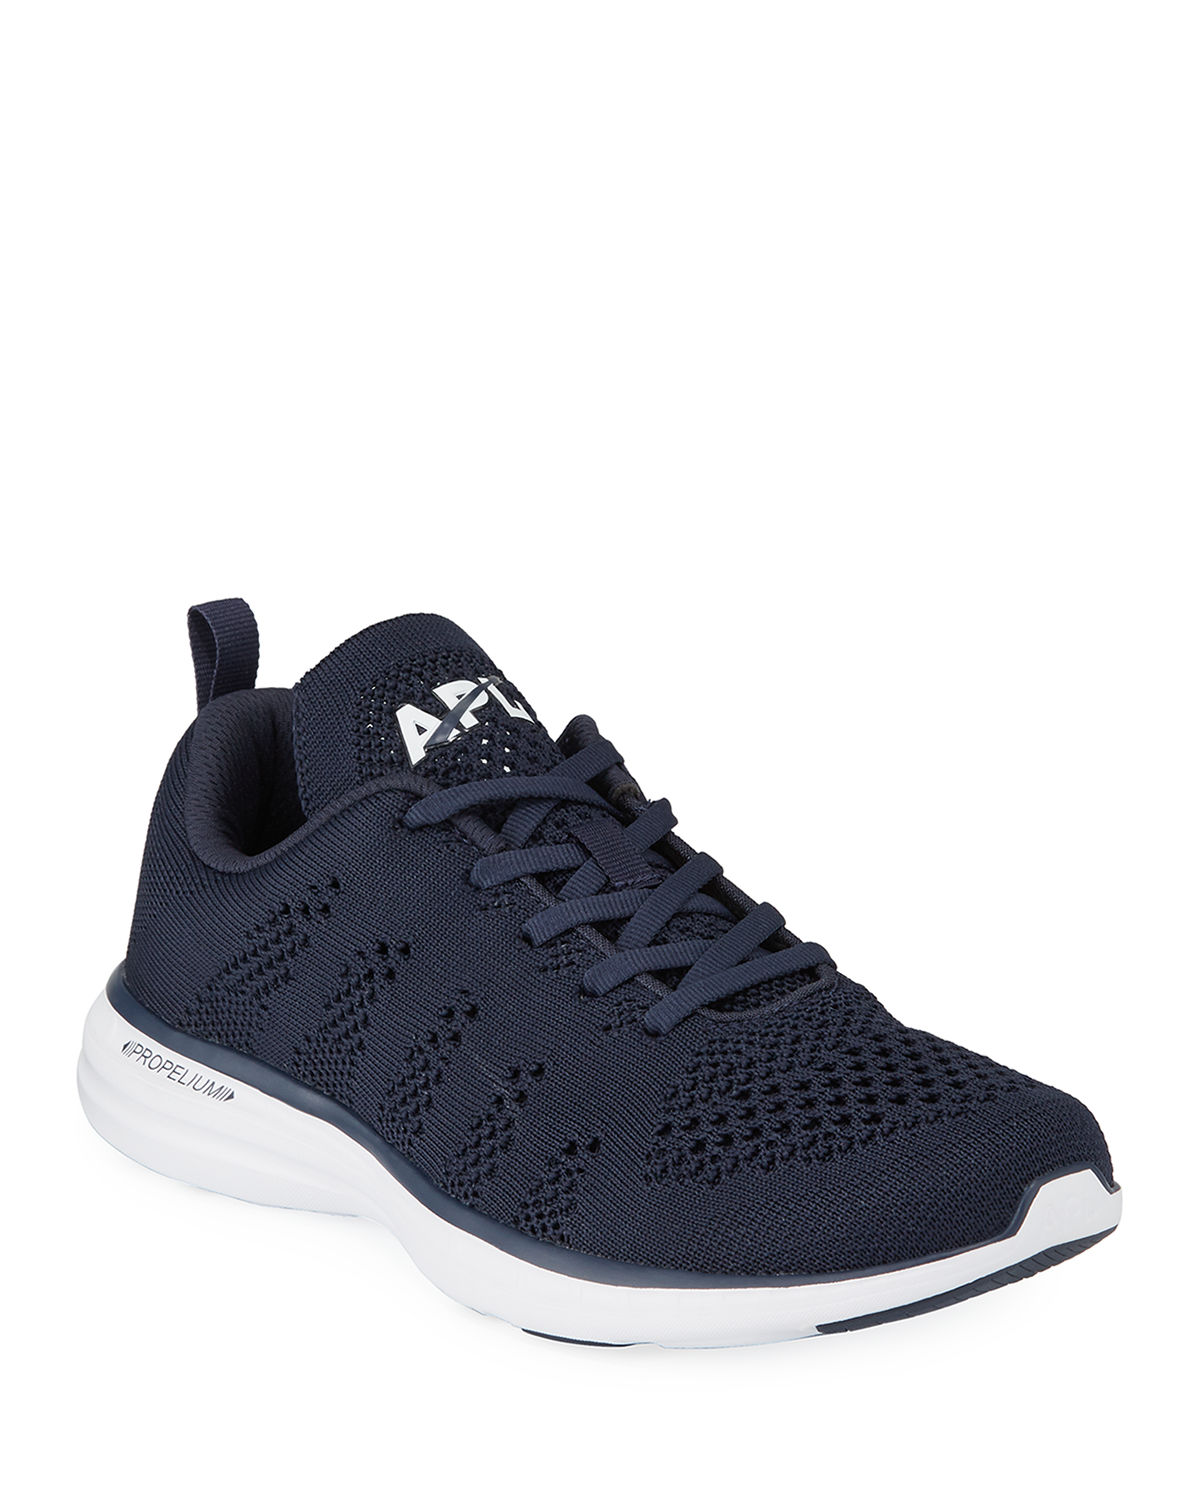 Apl Athletic Propulsion Labs Sneakers TECHLOOM PRO KNIT RUNNING SNEAKERS